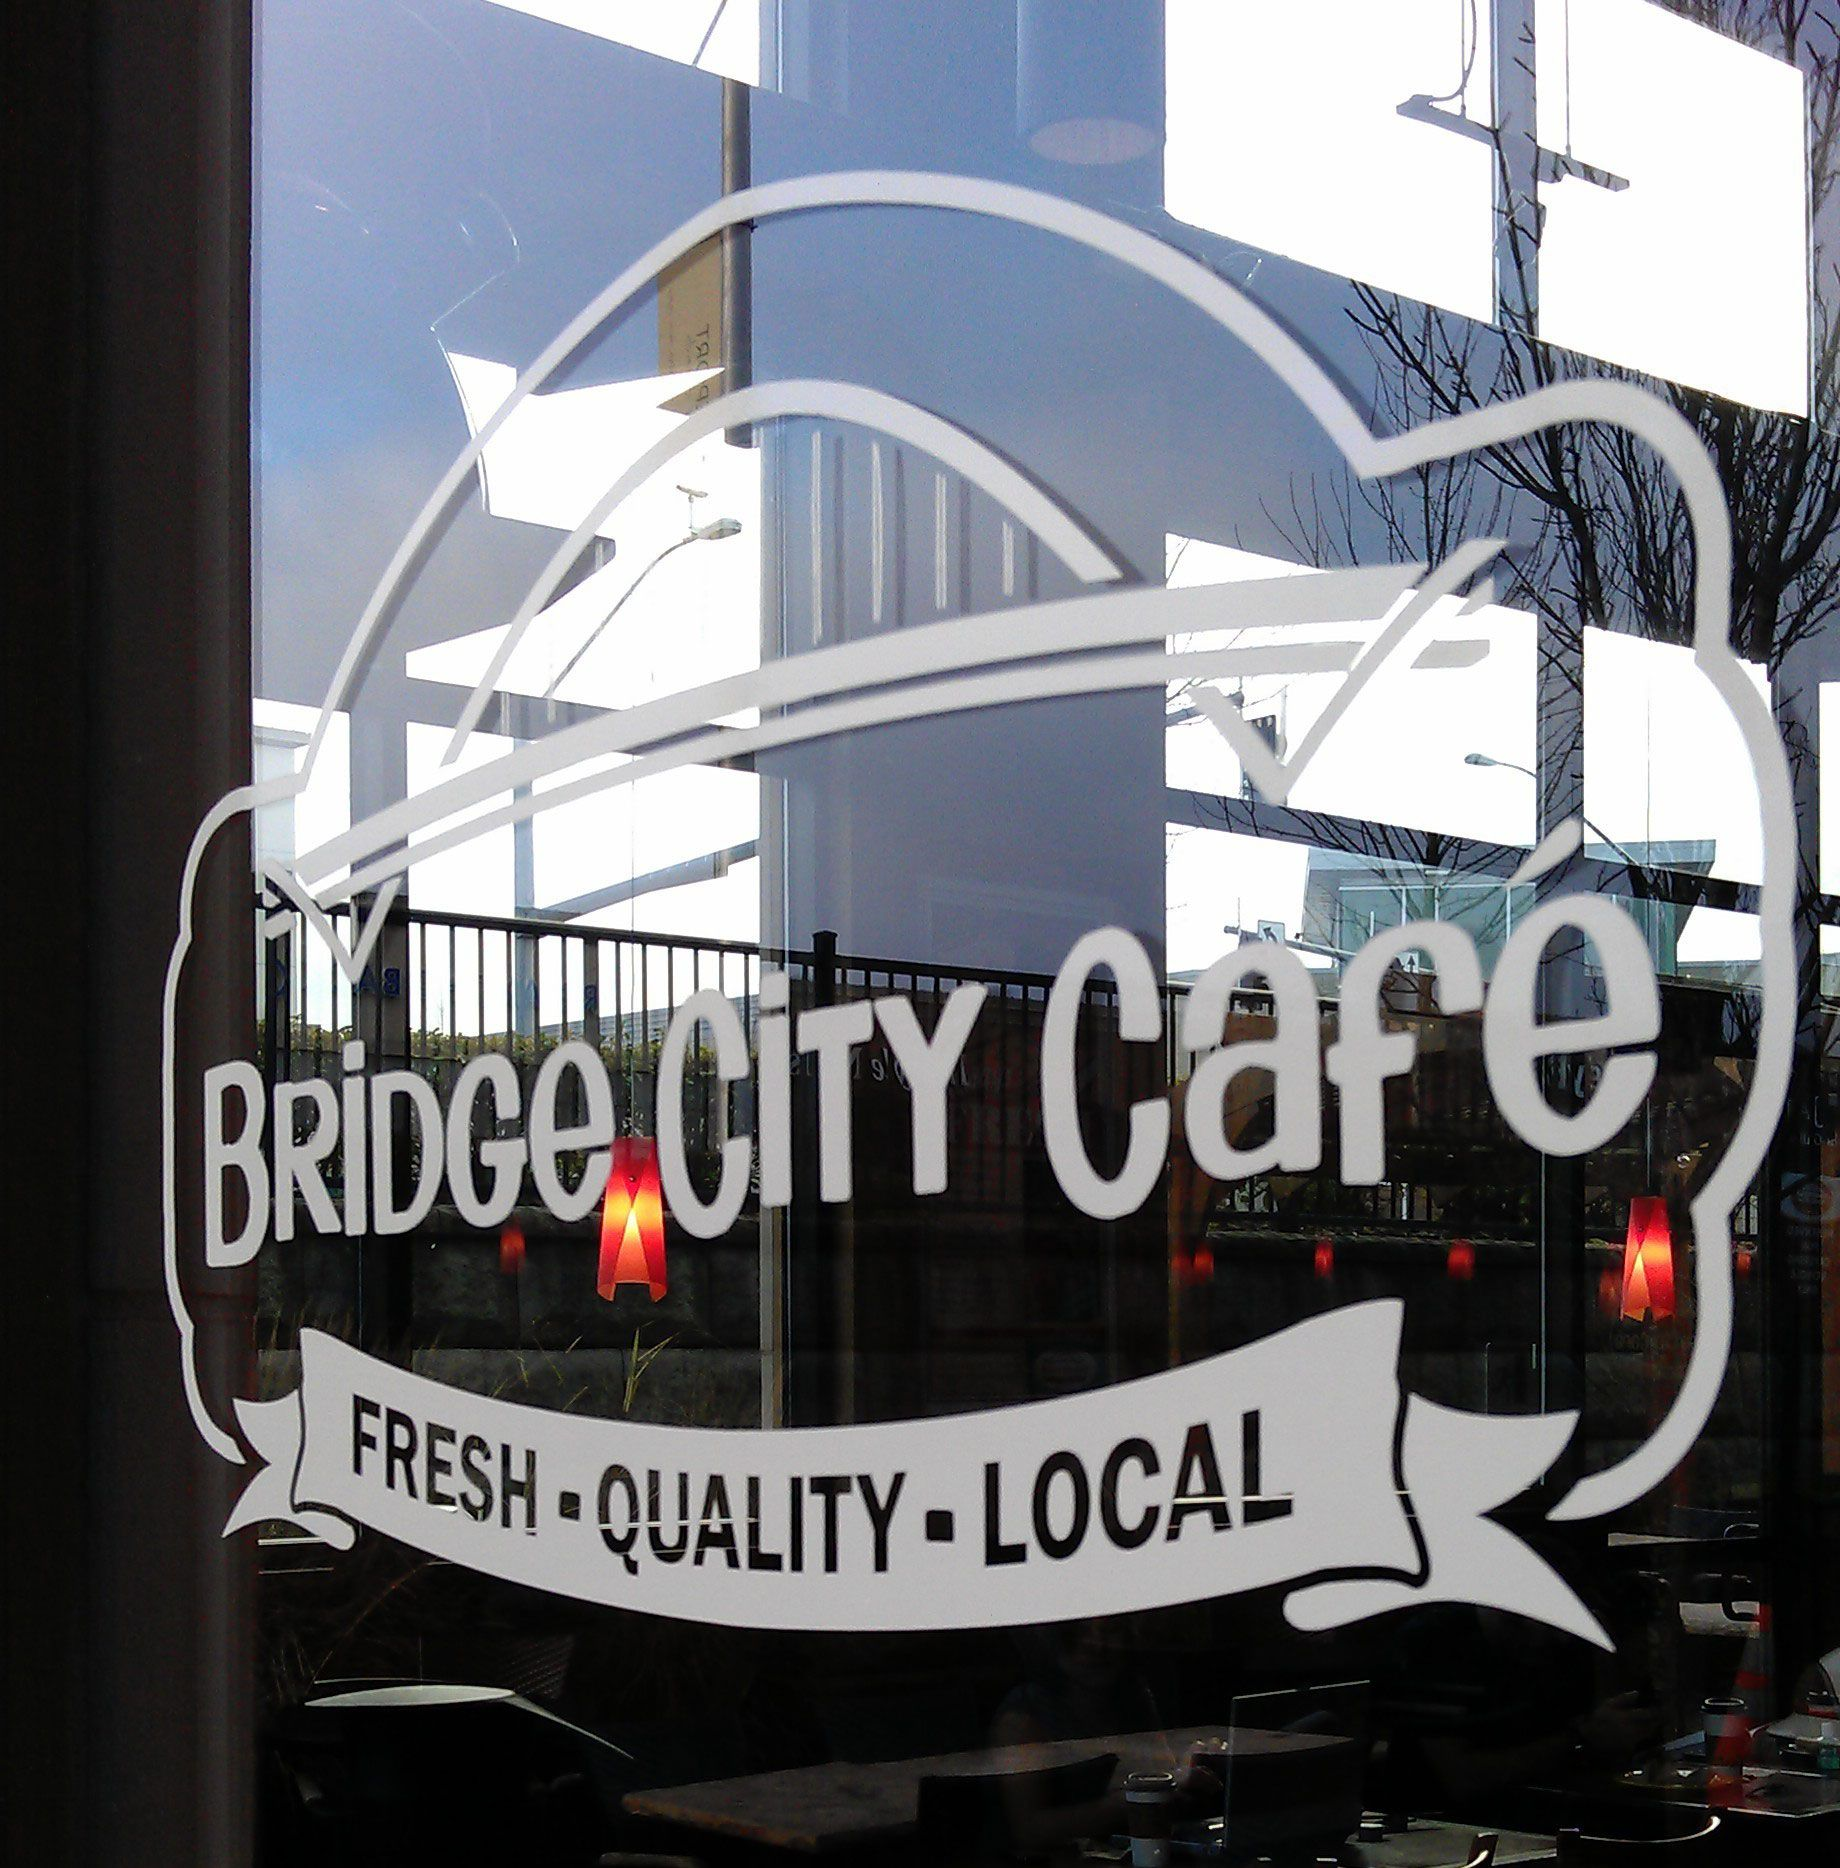 Bridge City Cafe! Home of the chipper,  Man I love this place!